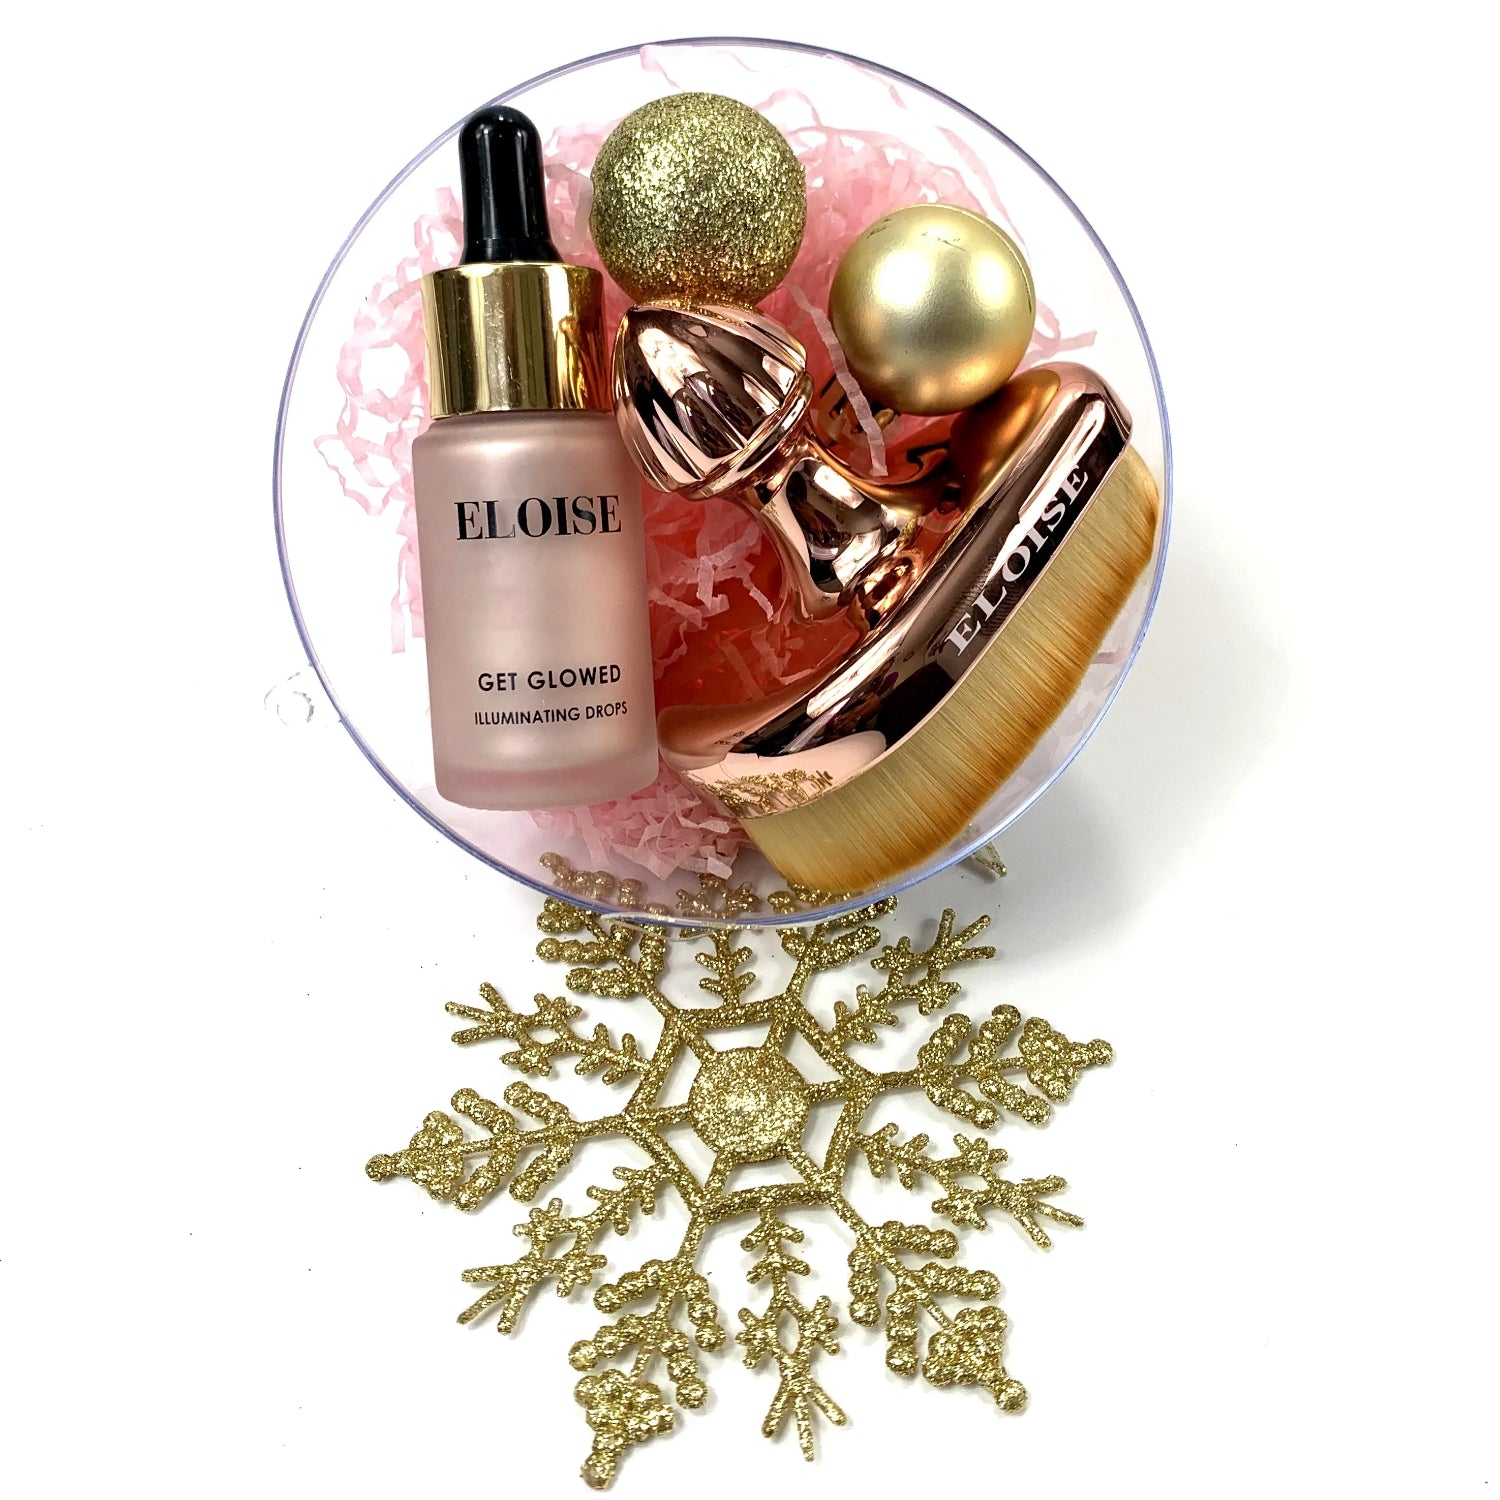 Tear Drop Brush & Get Glowed Illuminator Ball - Christmas Edition